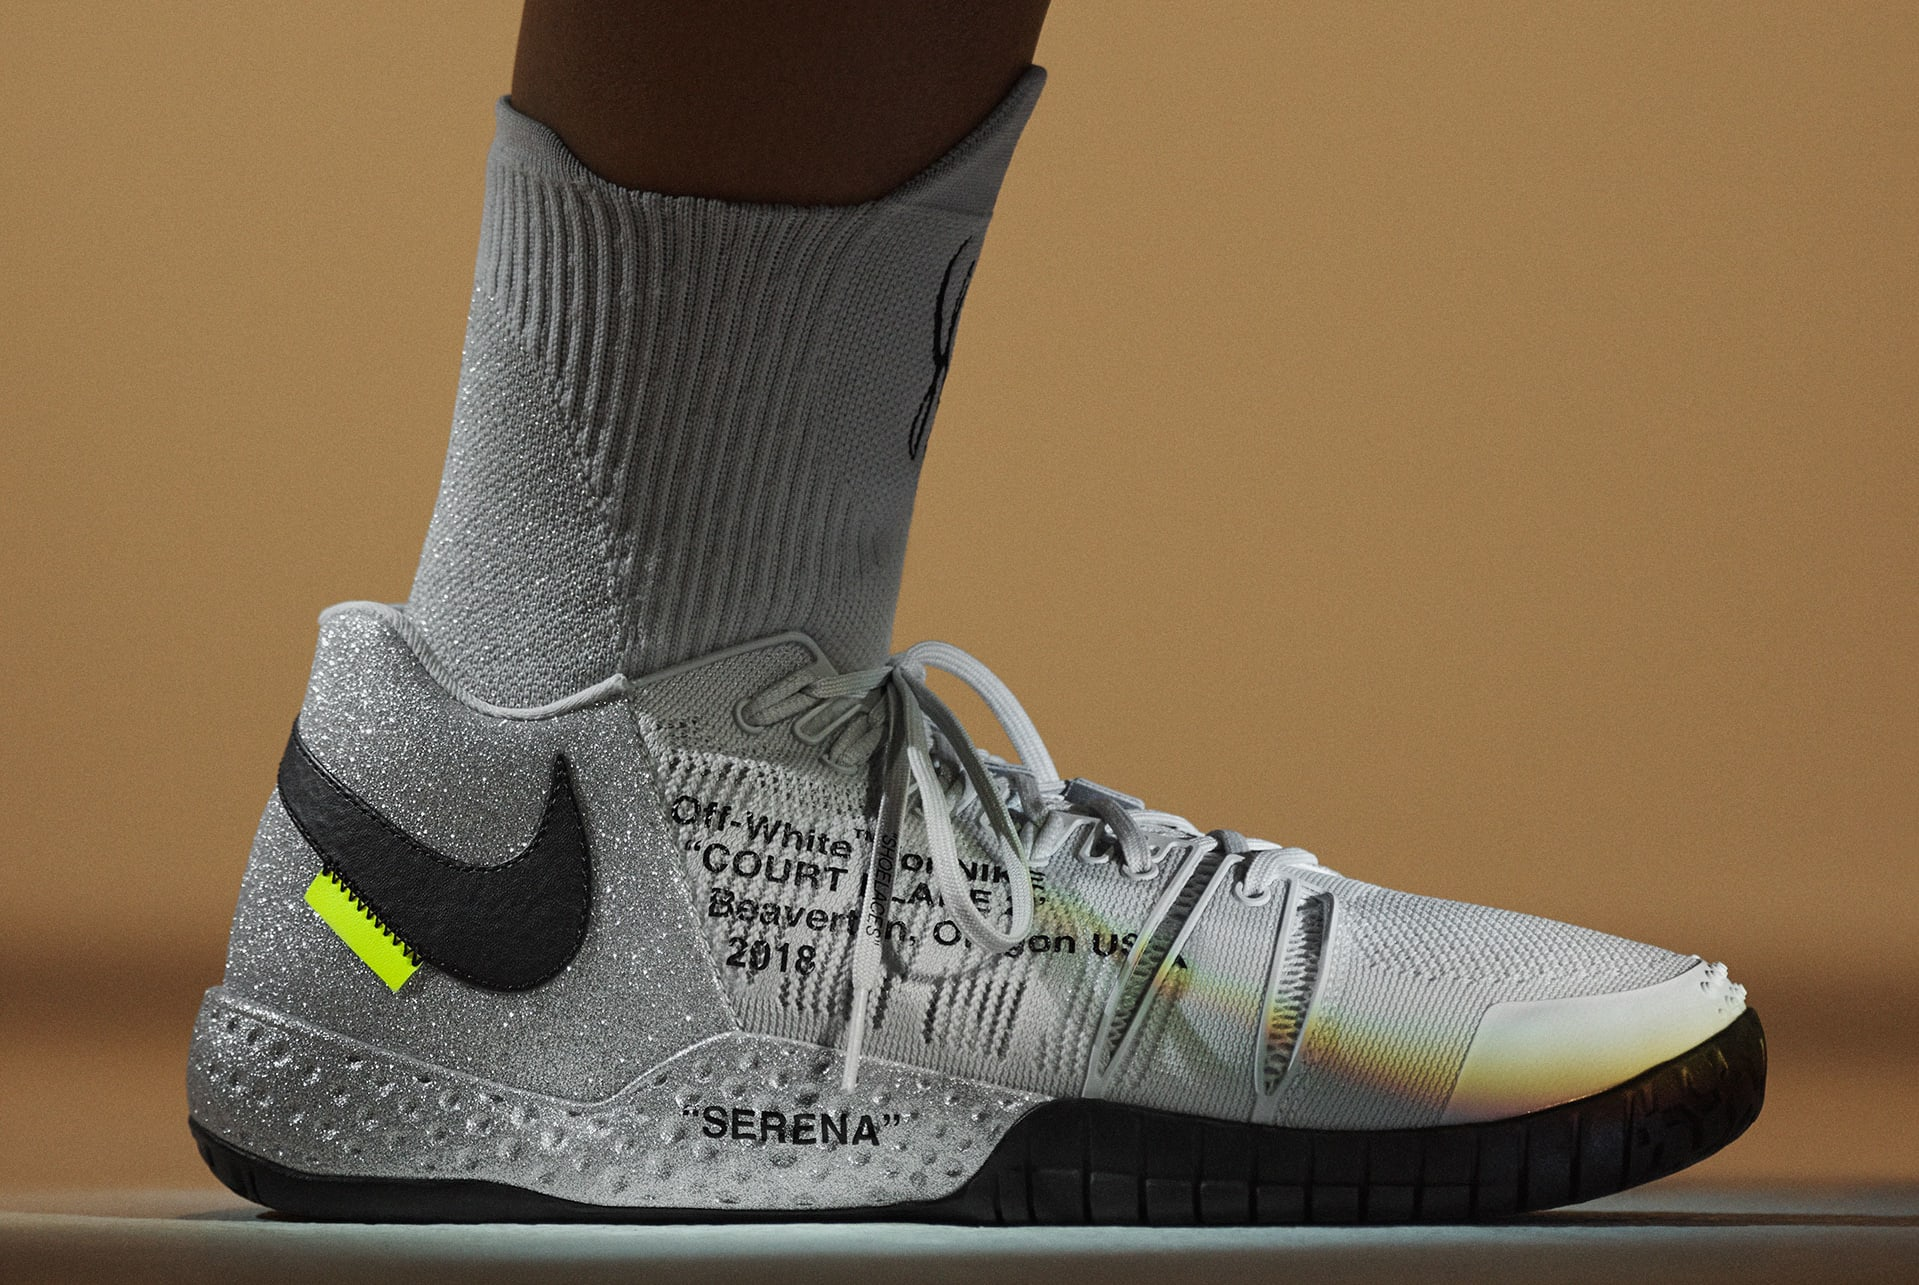 Virgil Abloh x Nike x Serena Williams Queen Collection NikeCourt Flare 2 (lateral)